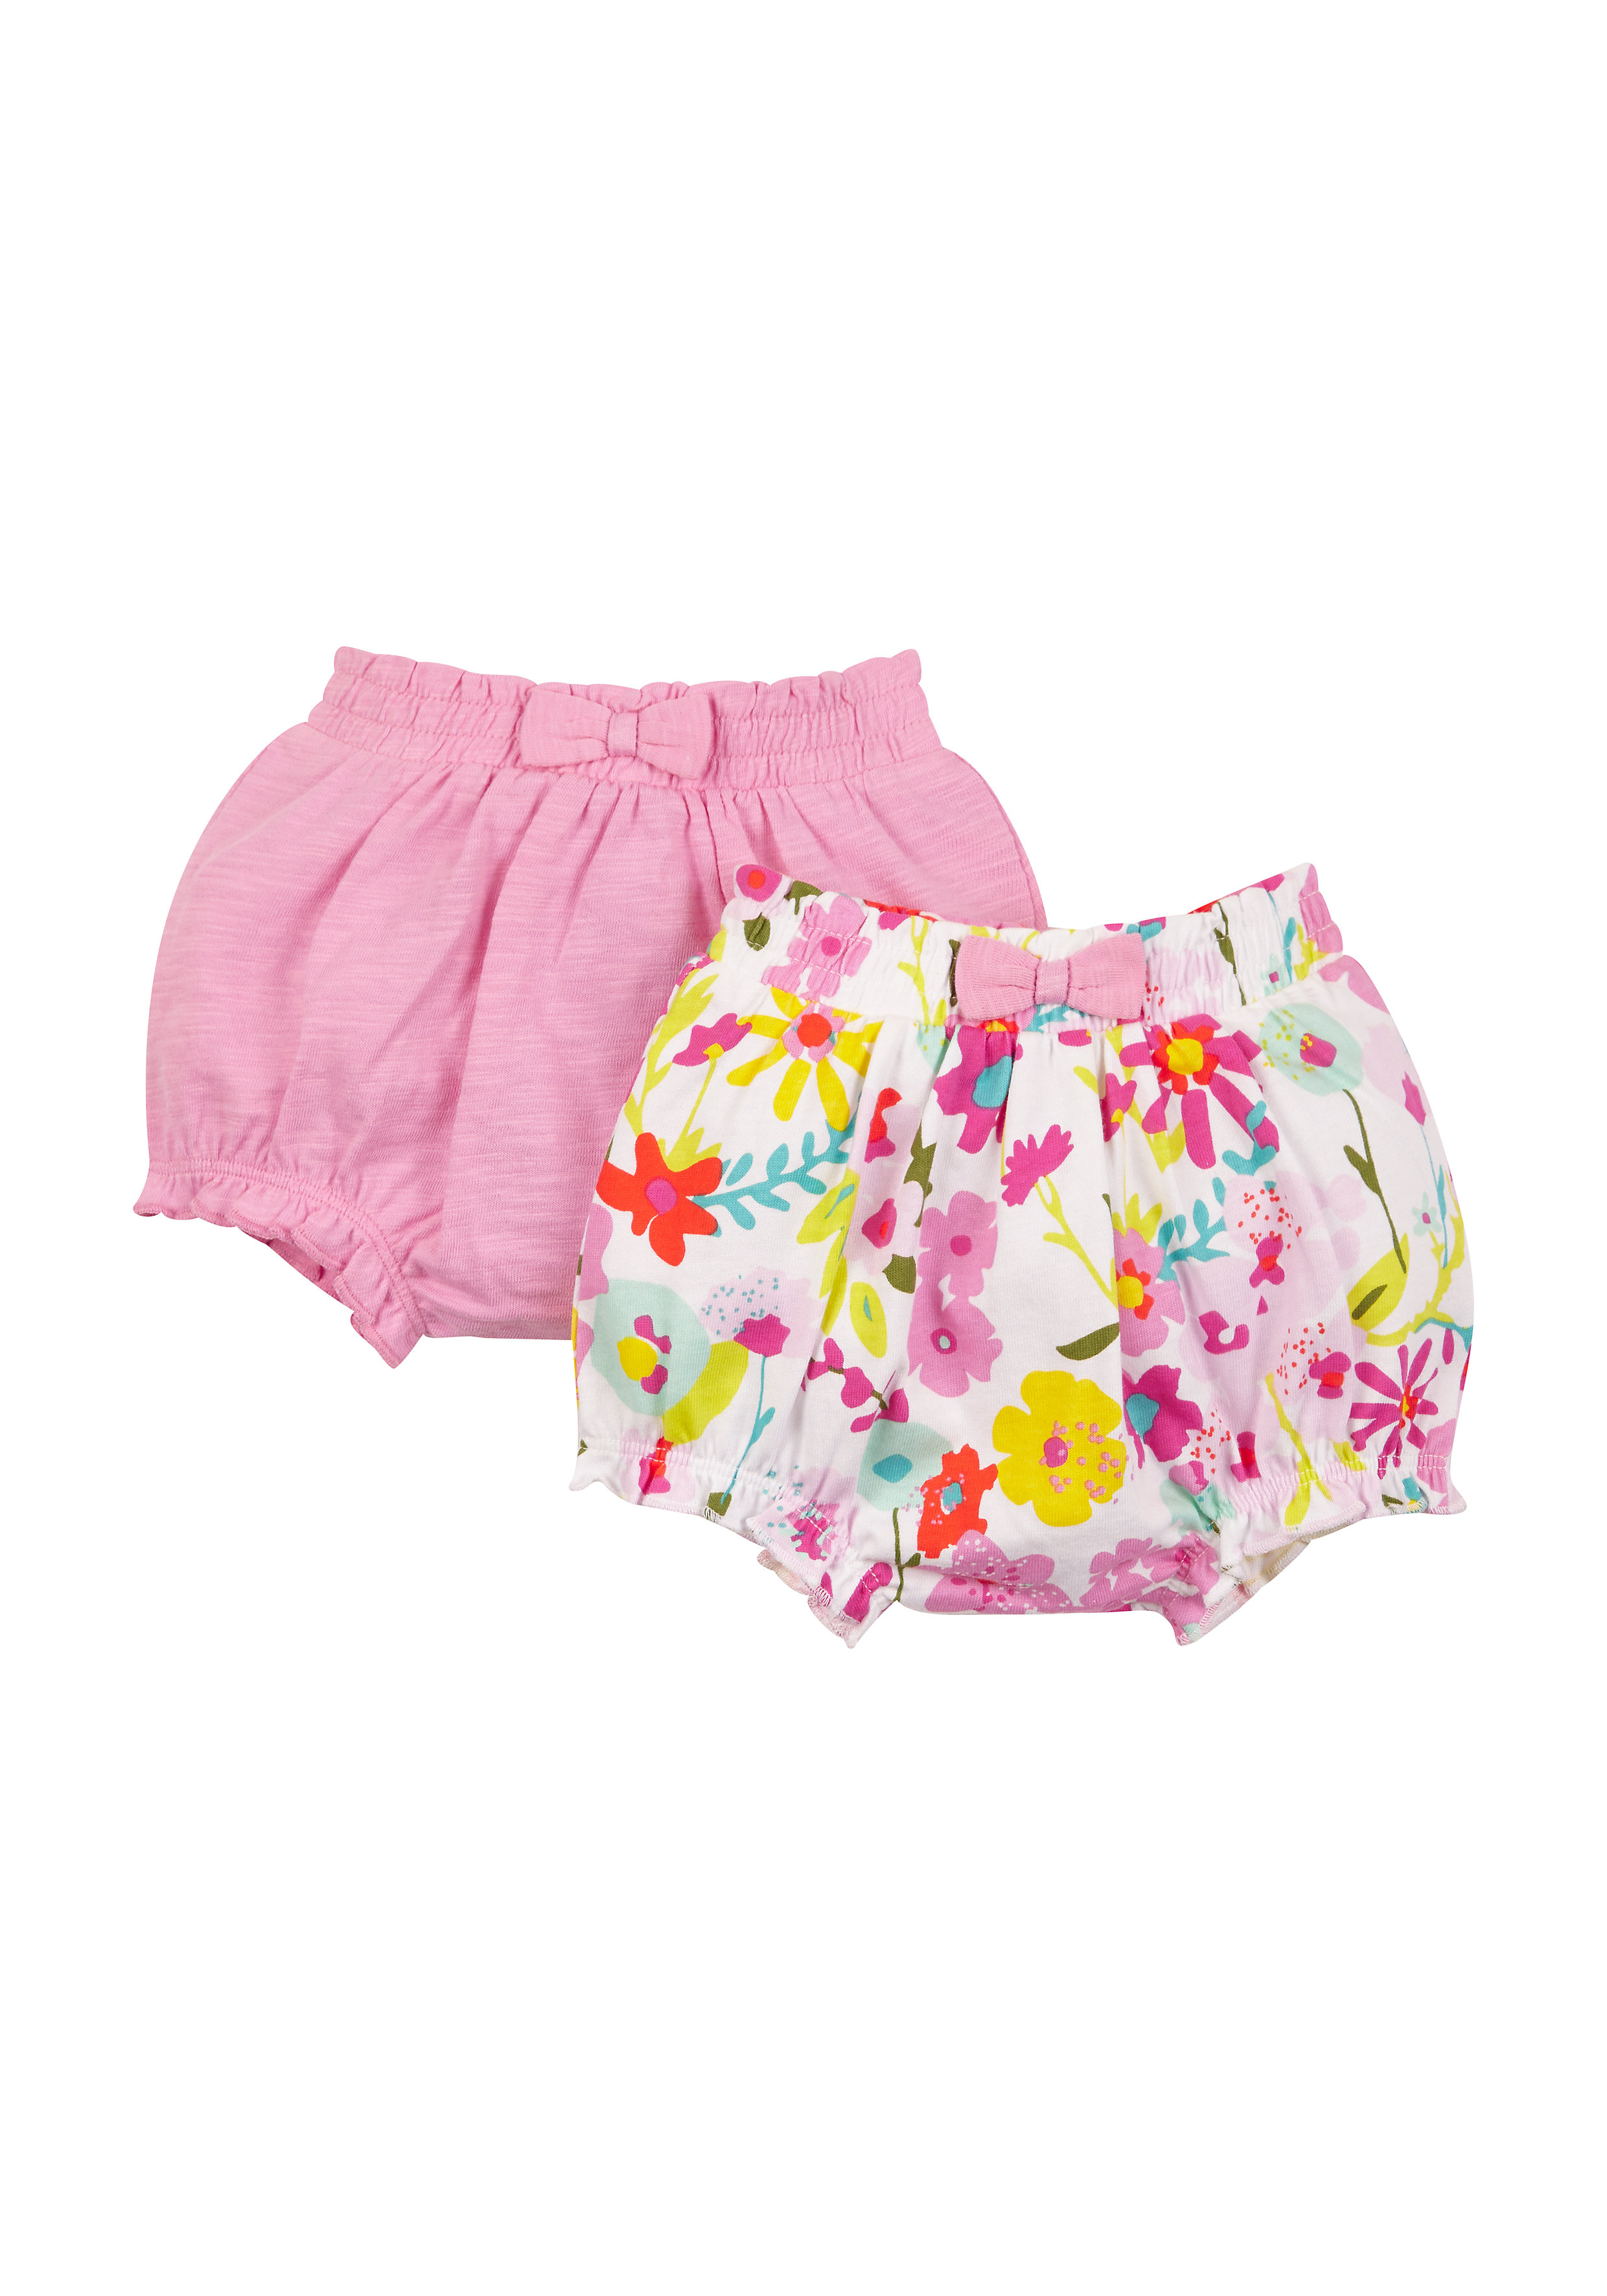 Mothercare | Girls Pink And Floral Bloomer Shorts - 2 Pack - Multicolor